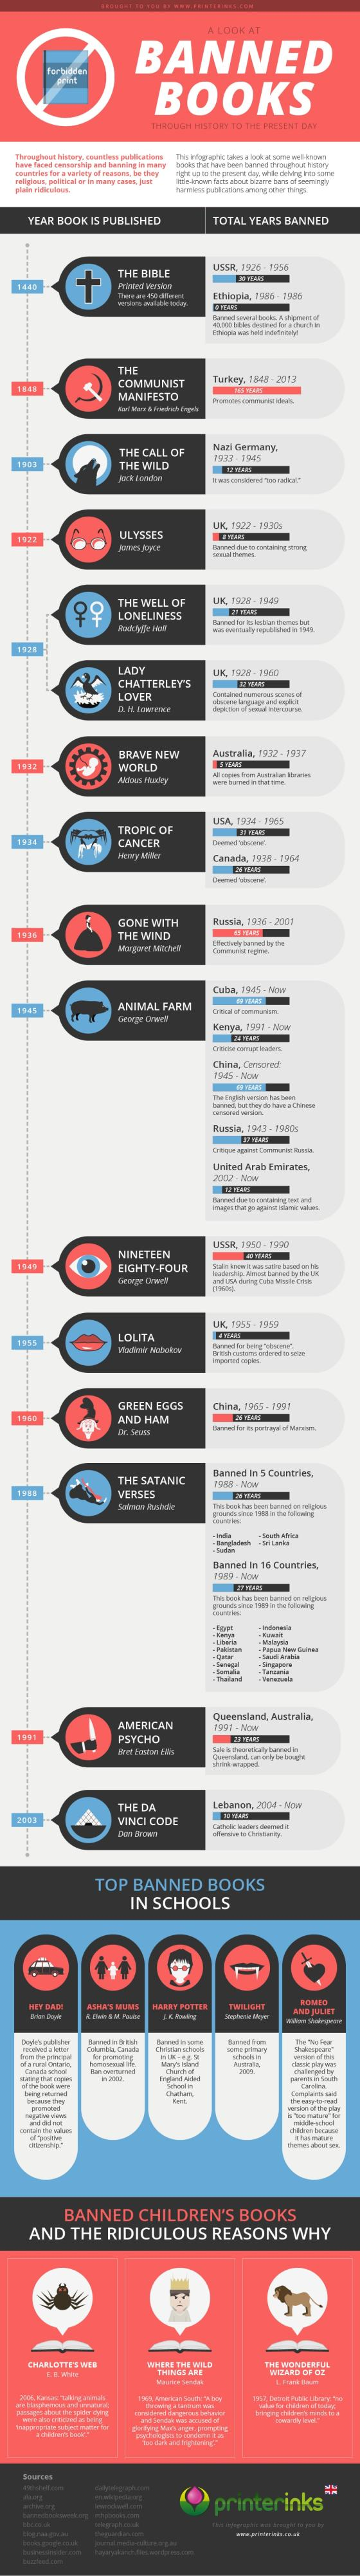 Infographic: Banned BooksThroughout the Ages Infographic